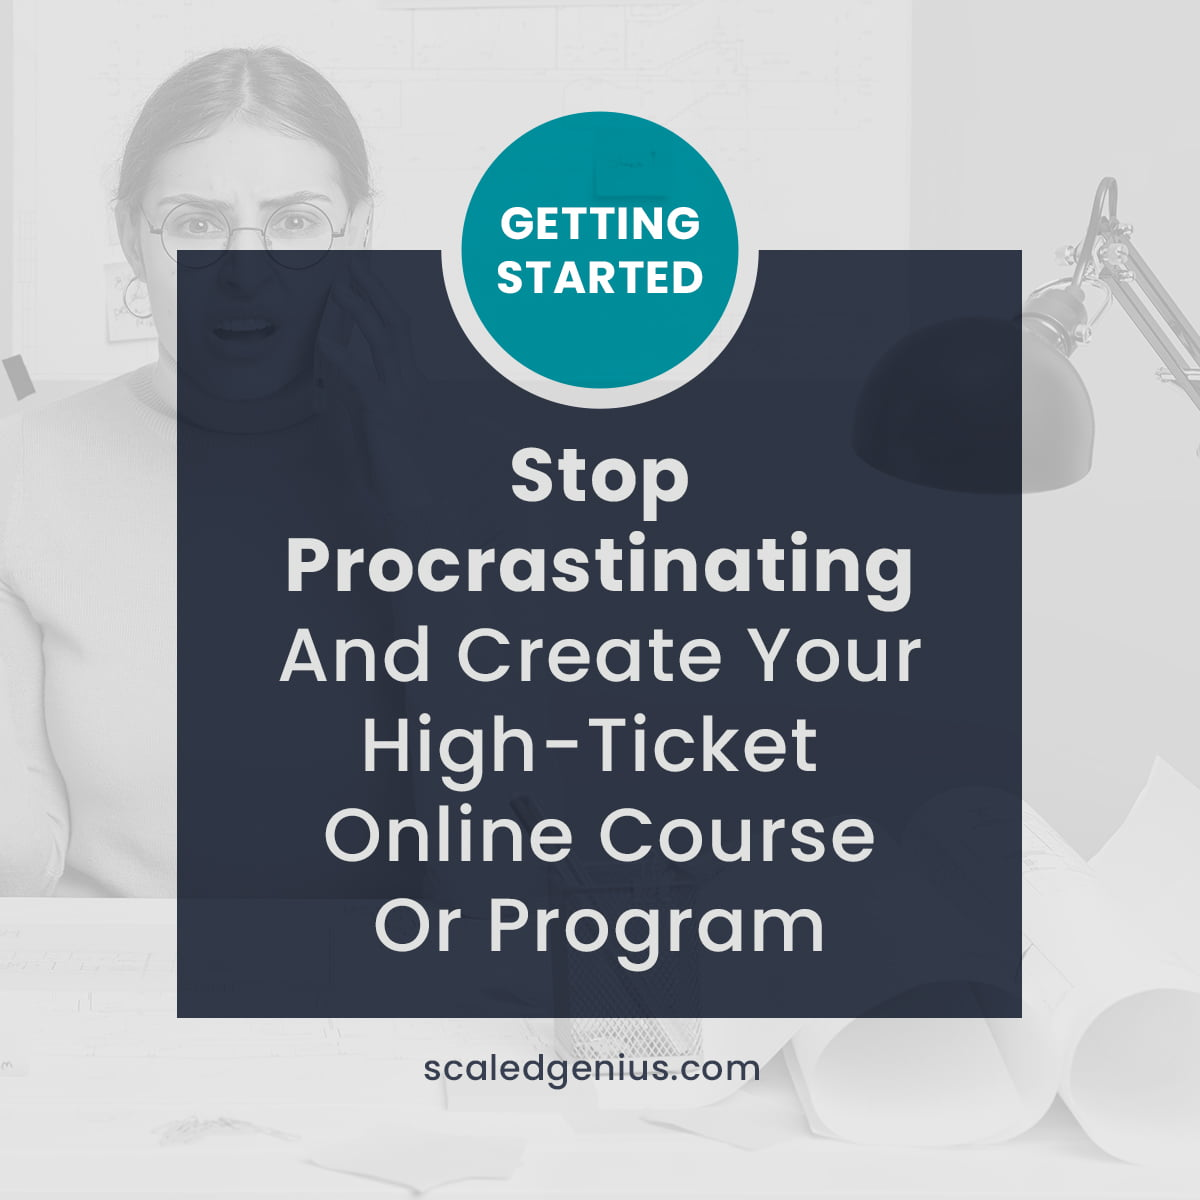 Stop Procrastinating and Create Your High-Ticket Online Course or Program